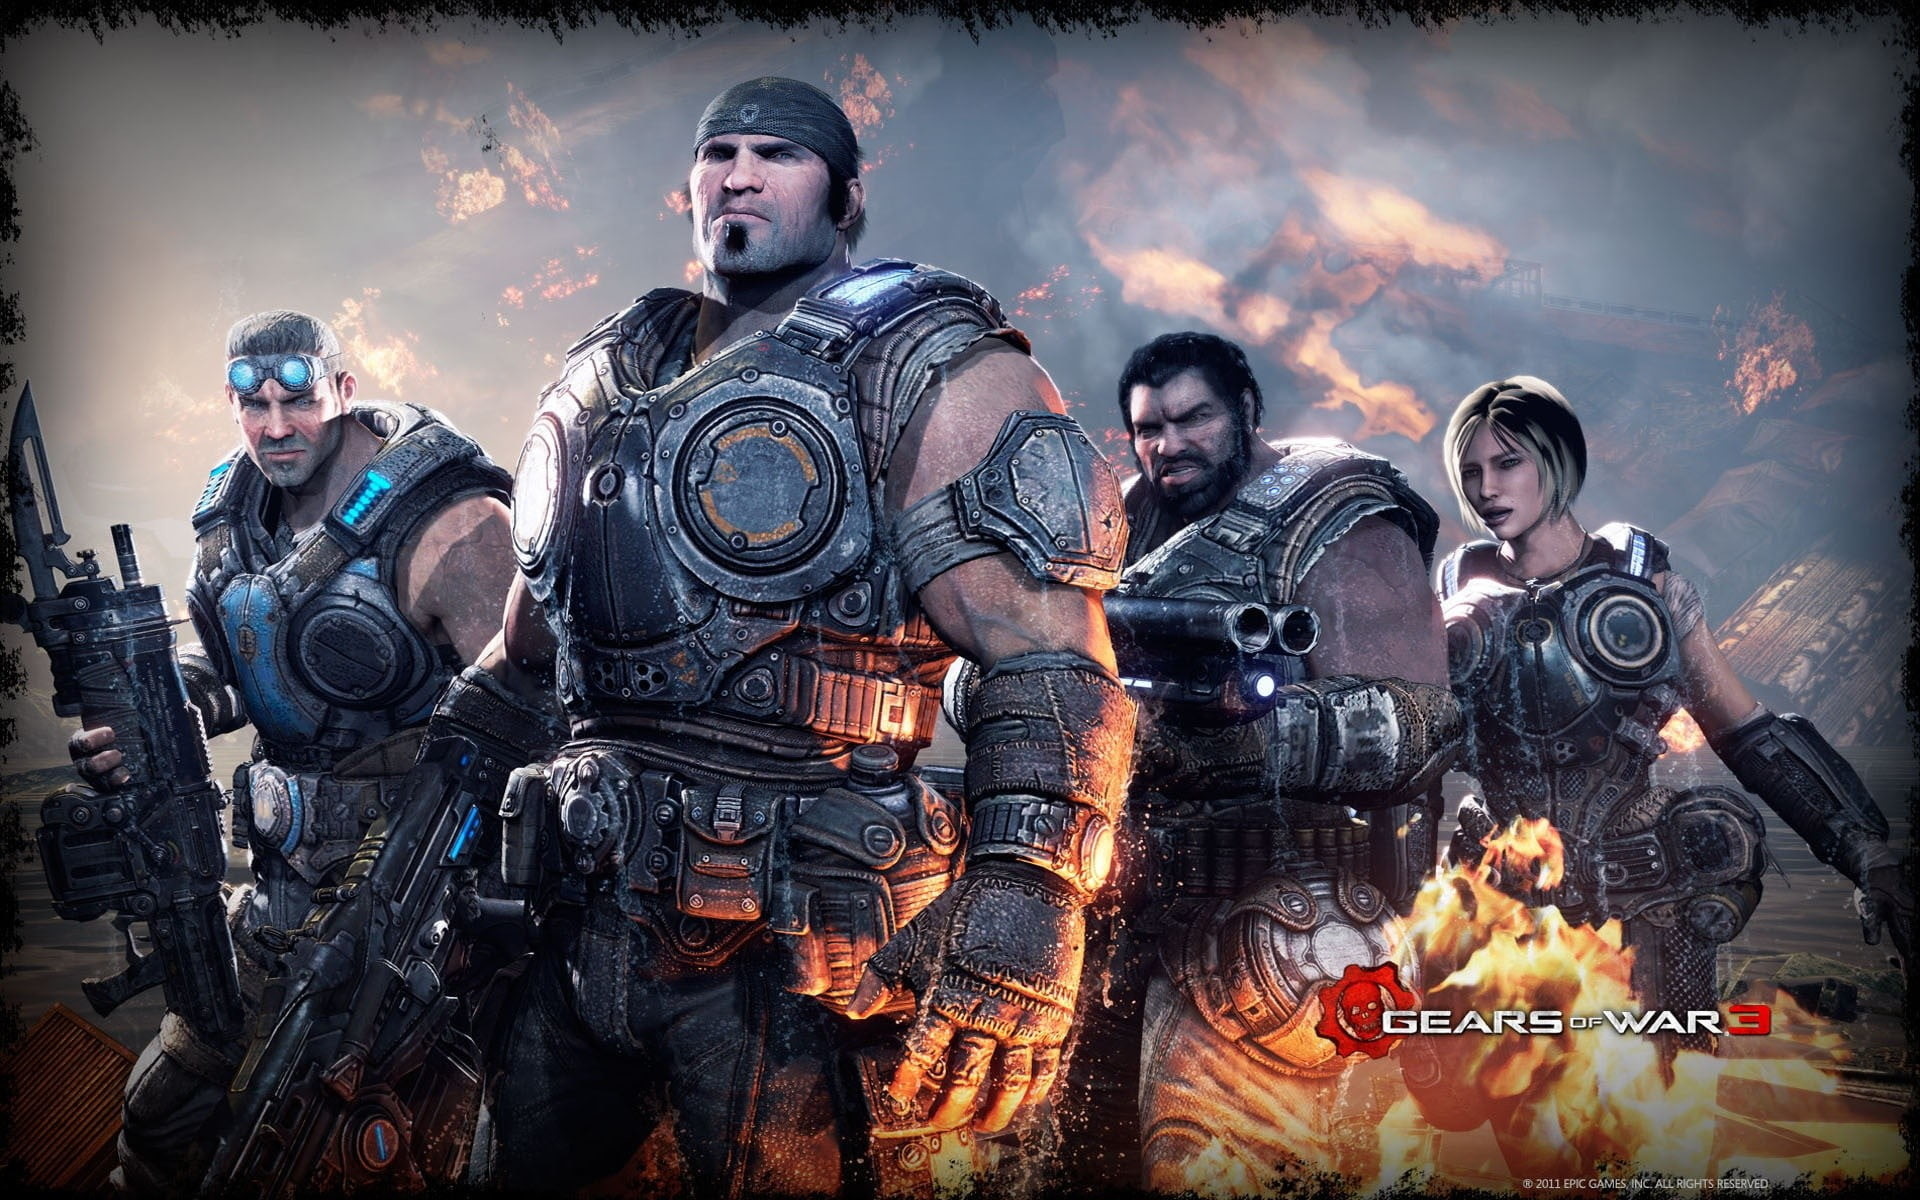 1920x1200 Gears of War 3 HD Wallpaper 16 - 1920 X 1200